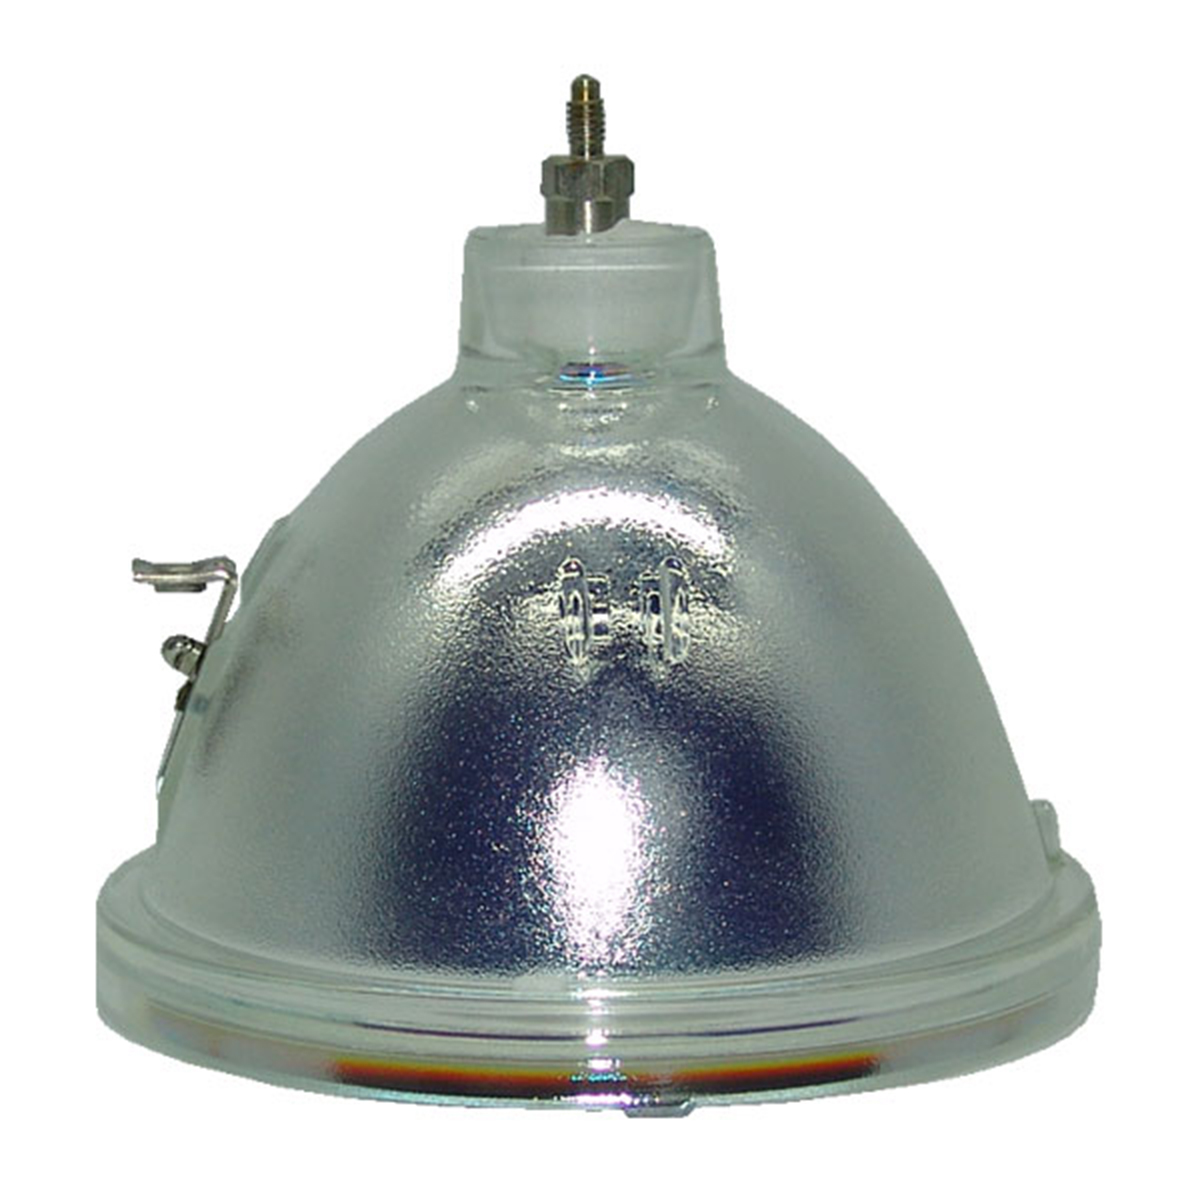 Original Philips TV Lamp Replacement with Housing for RCA HD50LPW163YX2(H) - image 4 de 5